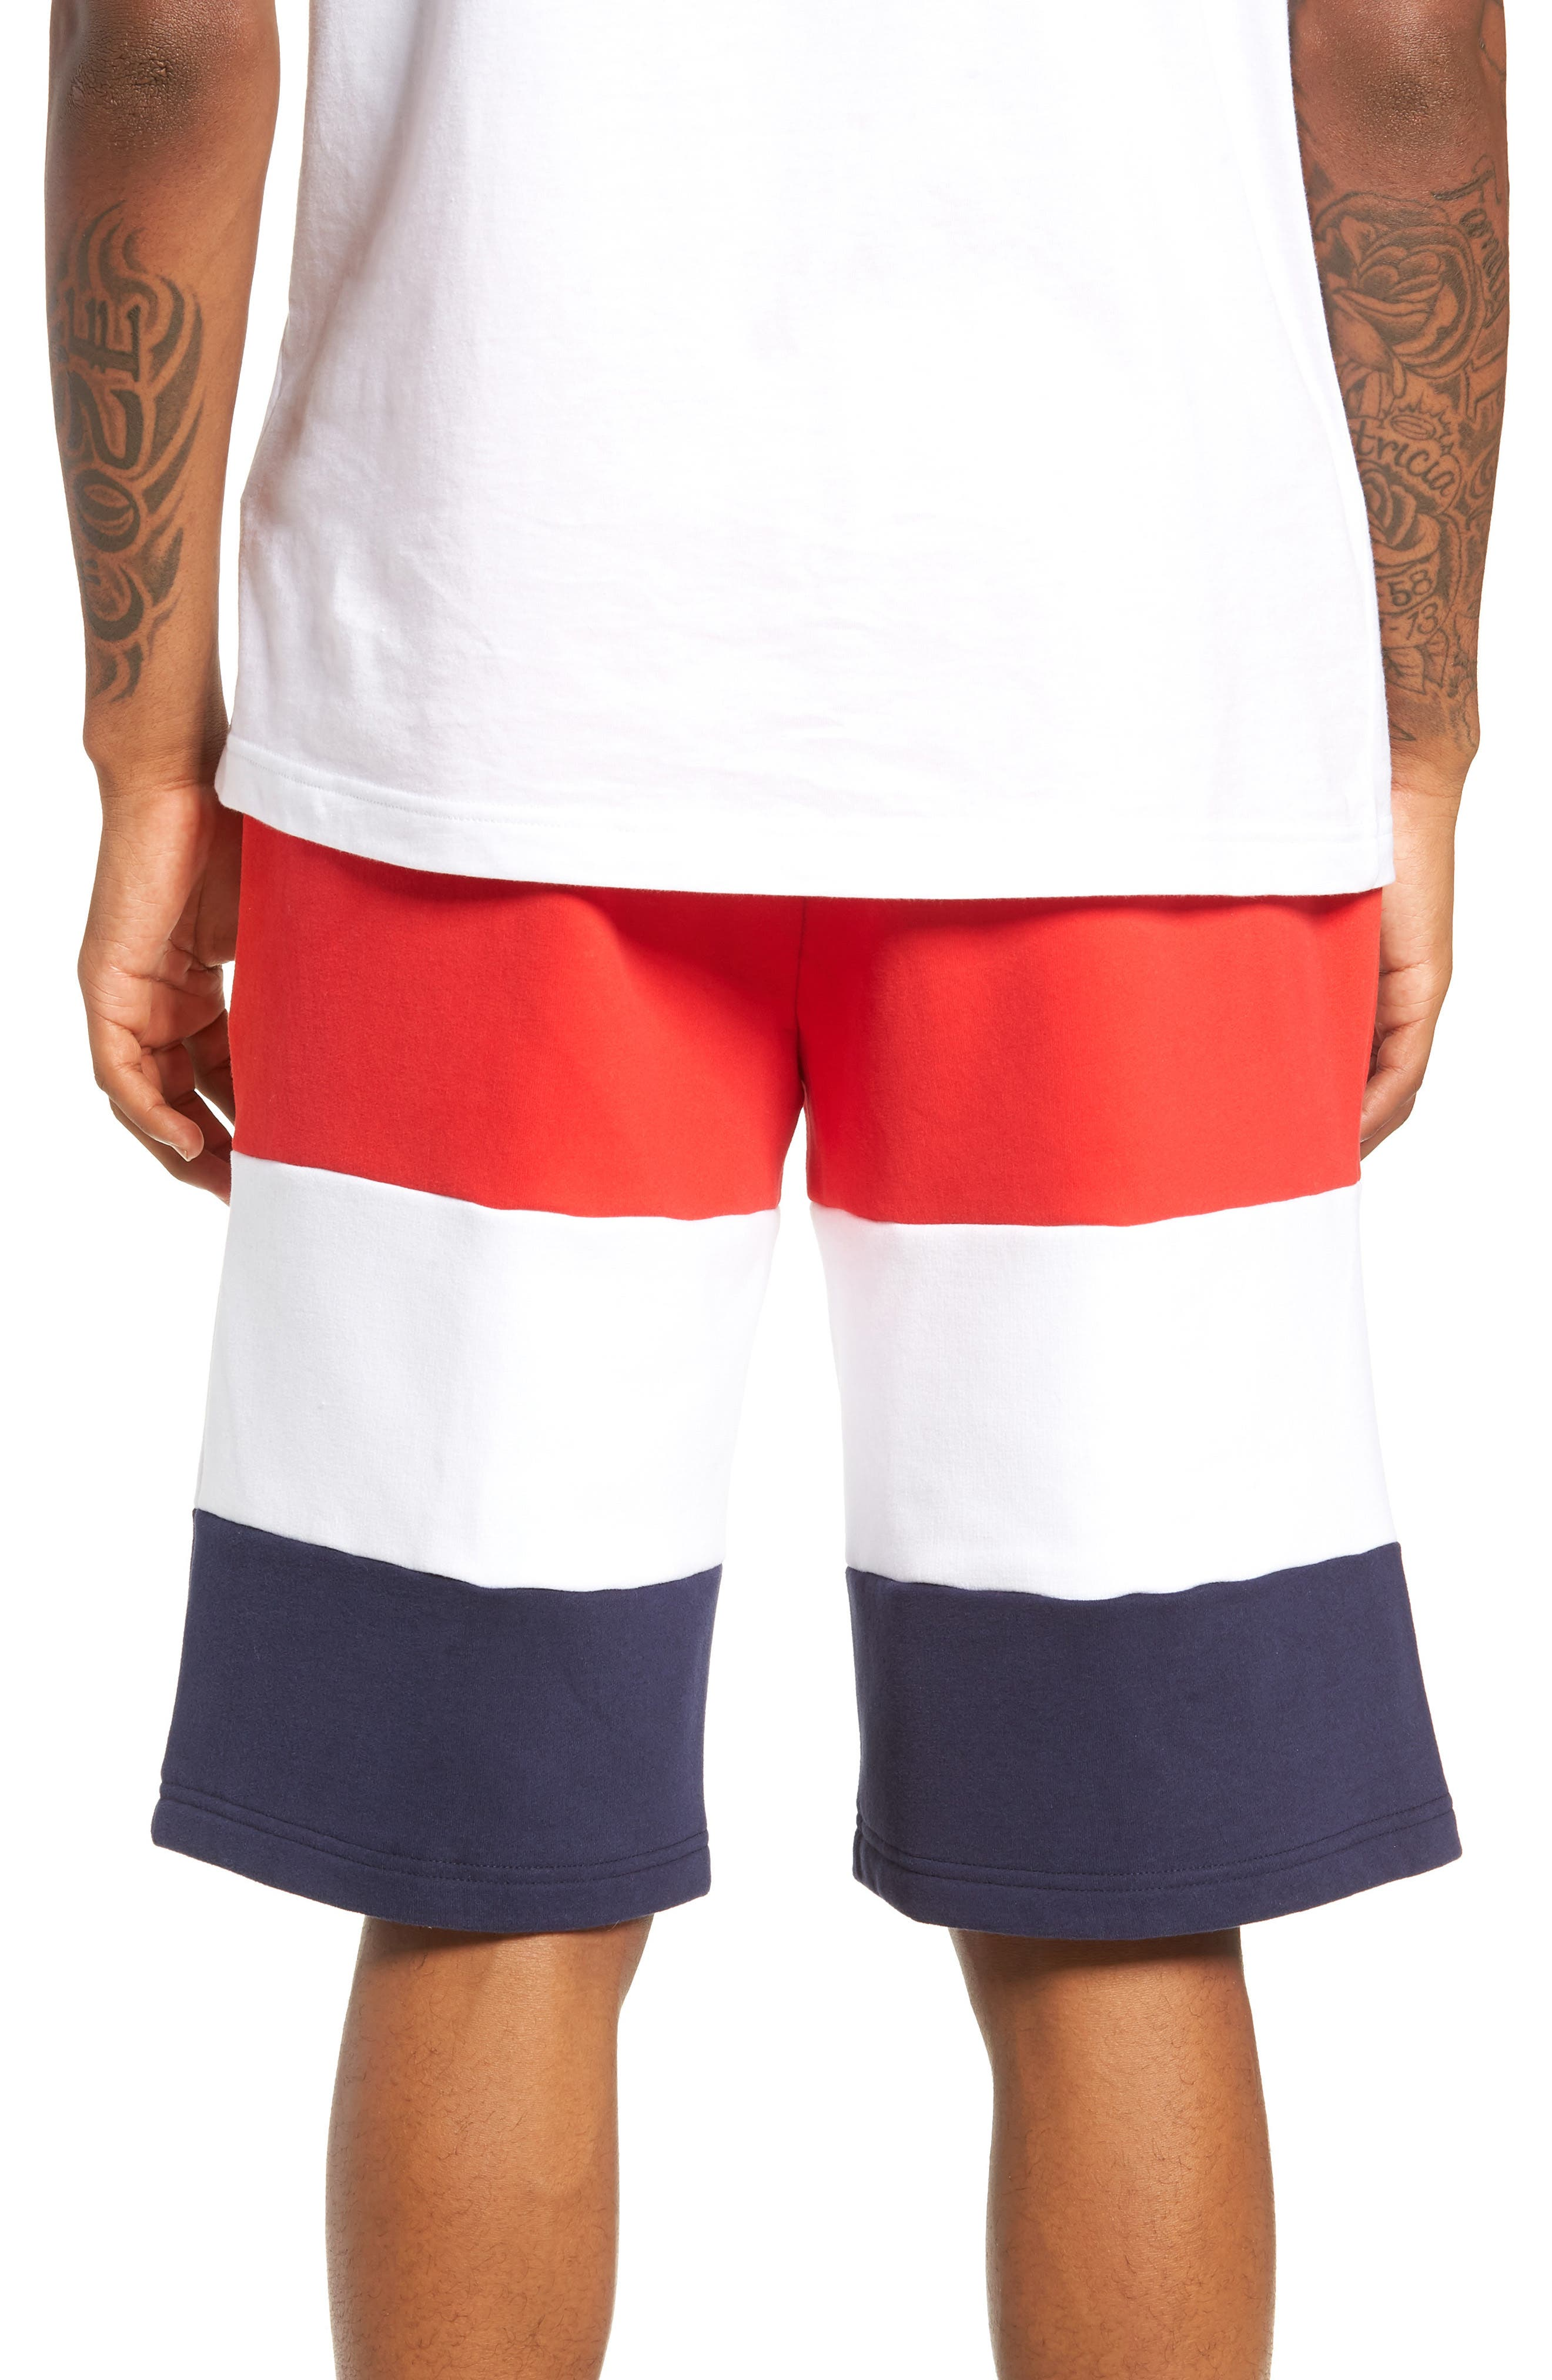 Alanzo Shorts,                             Alternate thumbnail 2, color,                             CHINESE RED/ WHITE/ NAVY